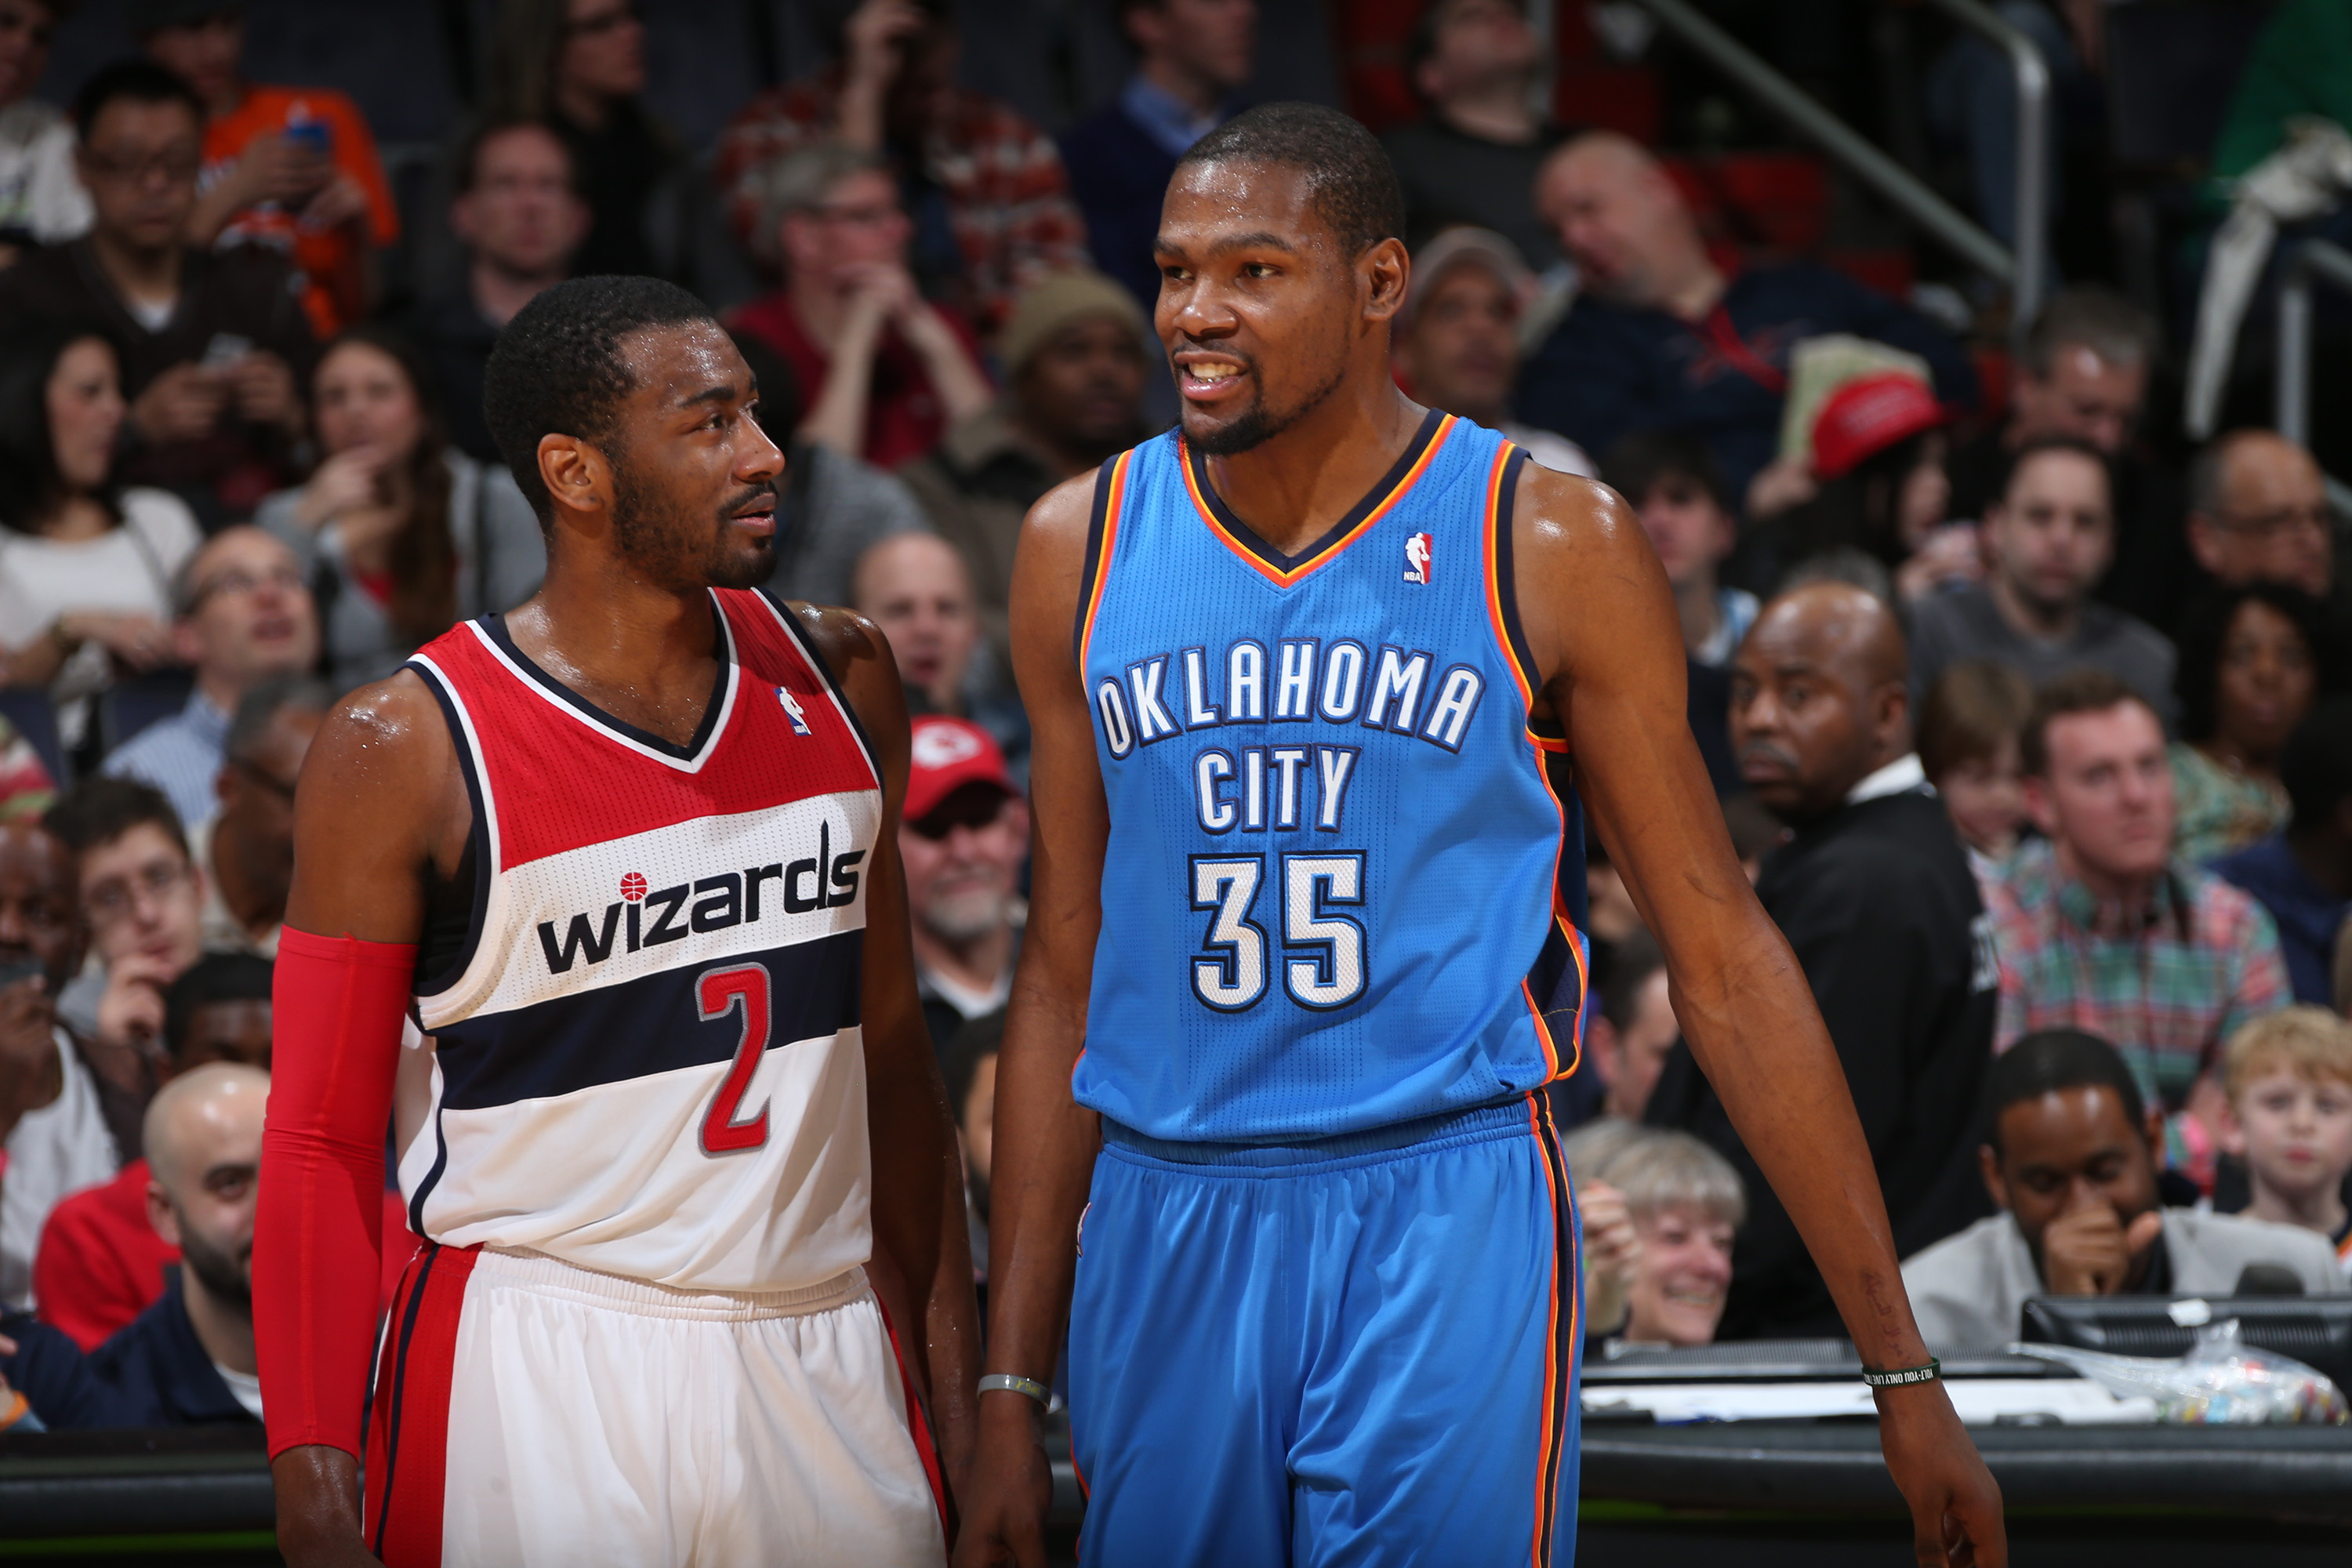 WASHINGTON, DC - FEBRUARY 2: John Wall #2 of the Washington Wizards talks with Kevin Durant #35 of the Oklahoma City Thunder during the game at the Verizon Center on February 2, 2014 in Washington, DC. NOTE TO USER: User expressly acknowledges and agrees that, by downloading and or using this photograph, User is consenting to the terms and conditions of the Getty Images License Agreement. Mandatory Copyright Notice: Copyright 2014 NBAE (Photo by Ned Dishman/NBAE via Getty Images)